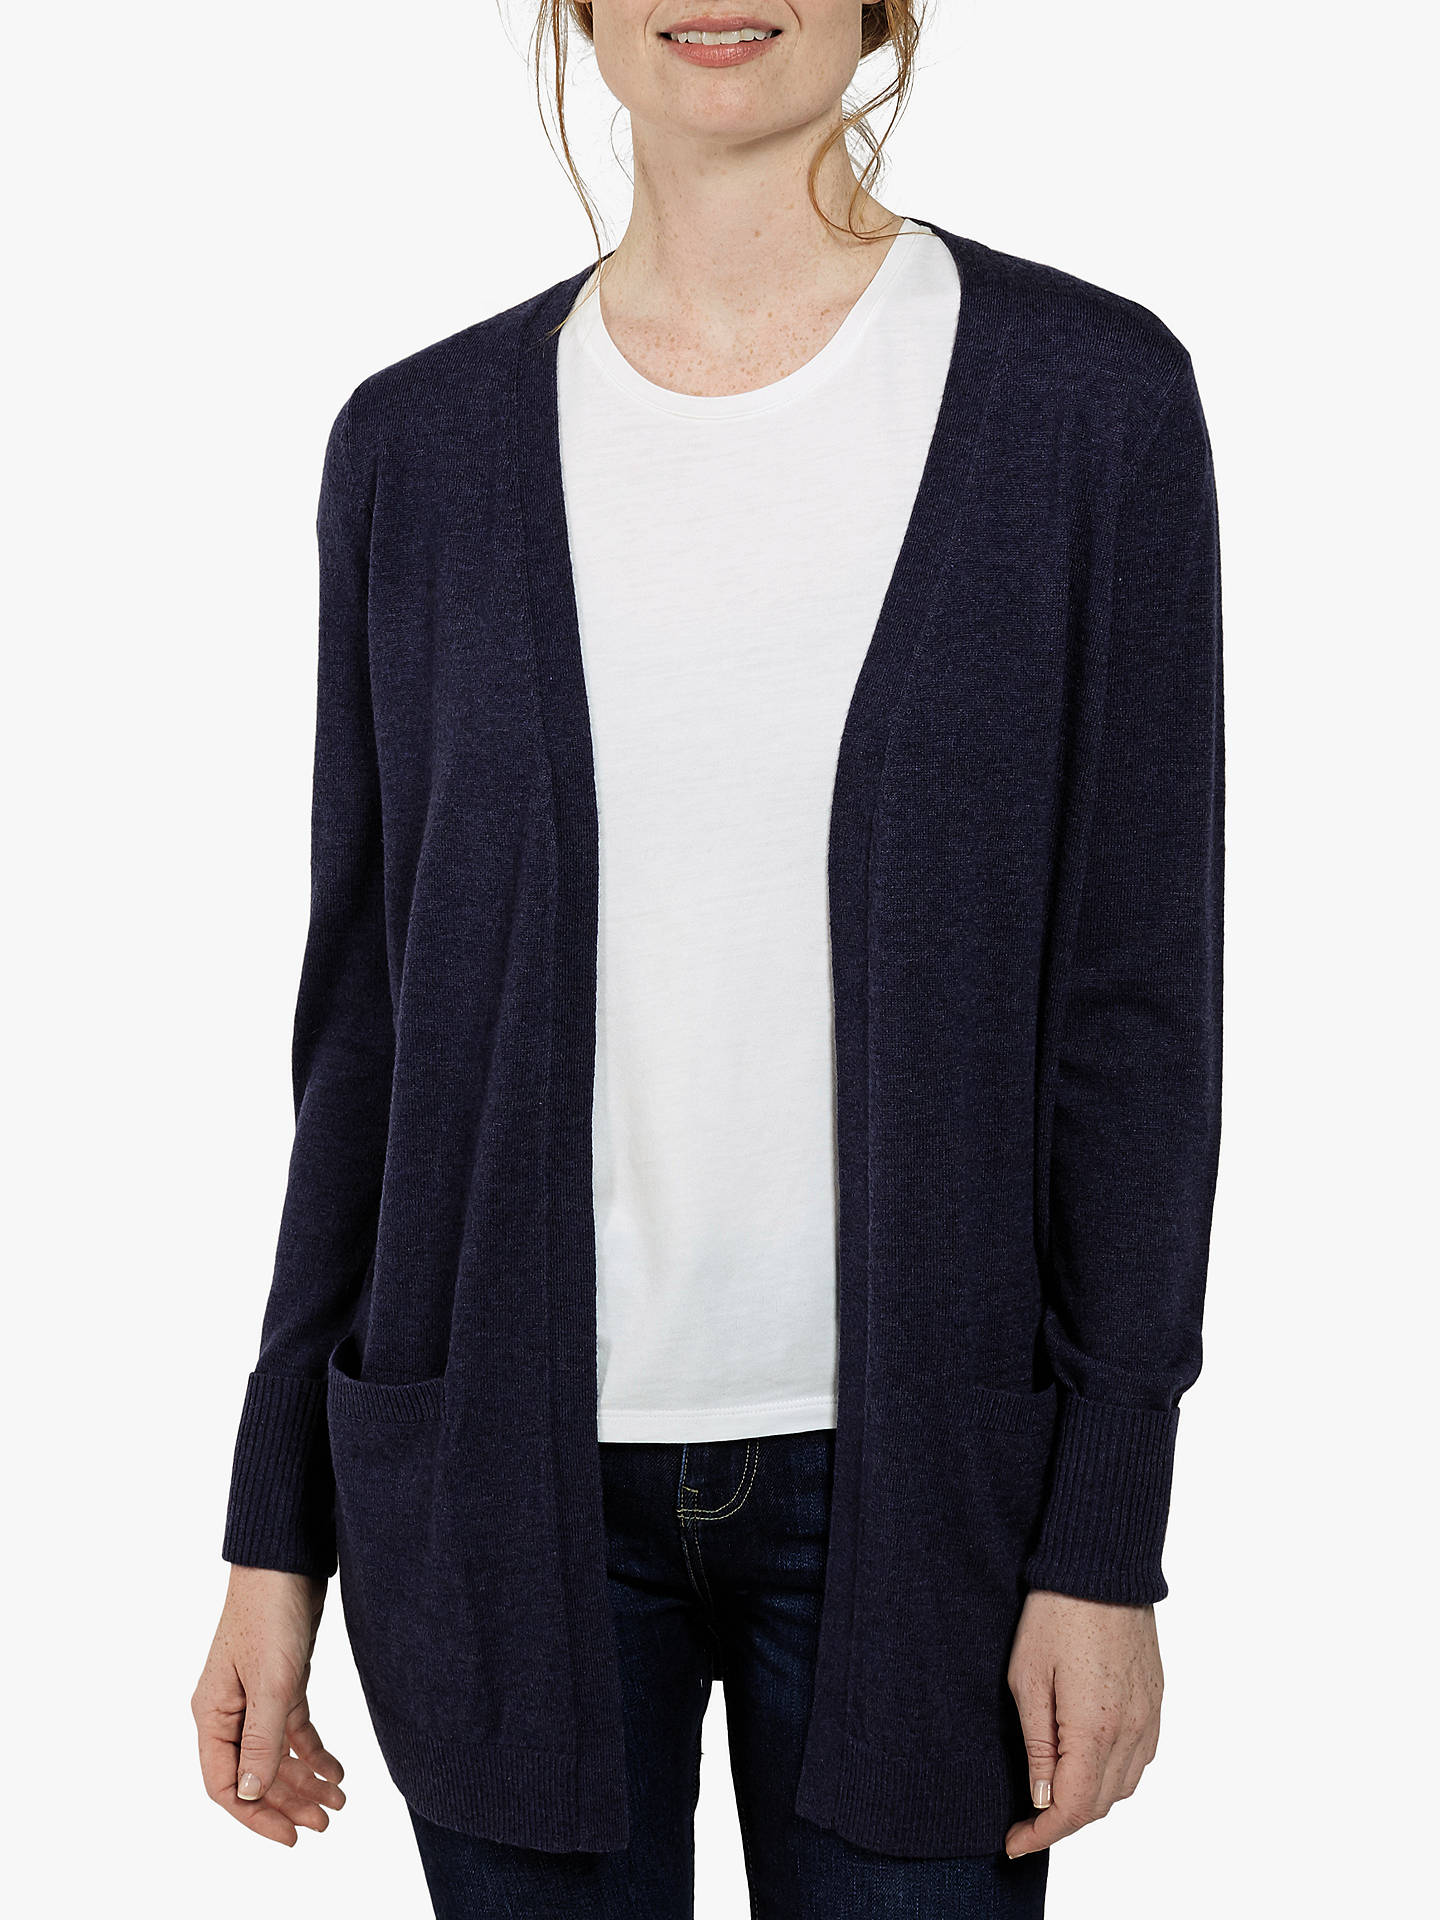 Fat Face Amber Cardigan Navy At John Lewis Partners Ambers Dress Buyfat 8 Online